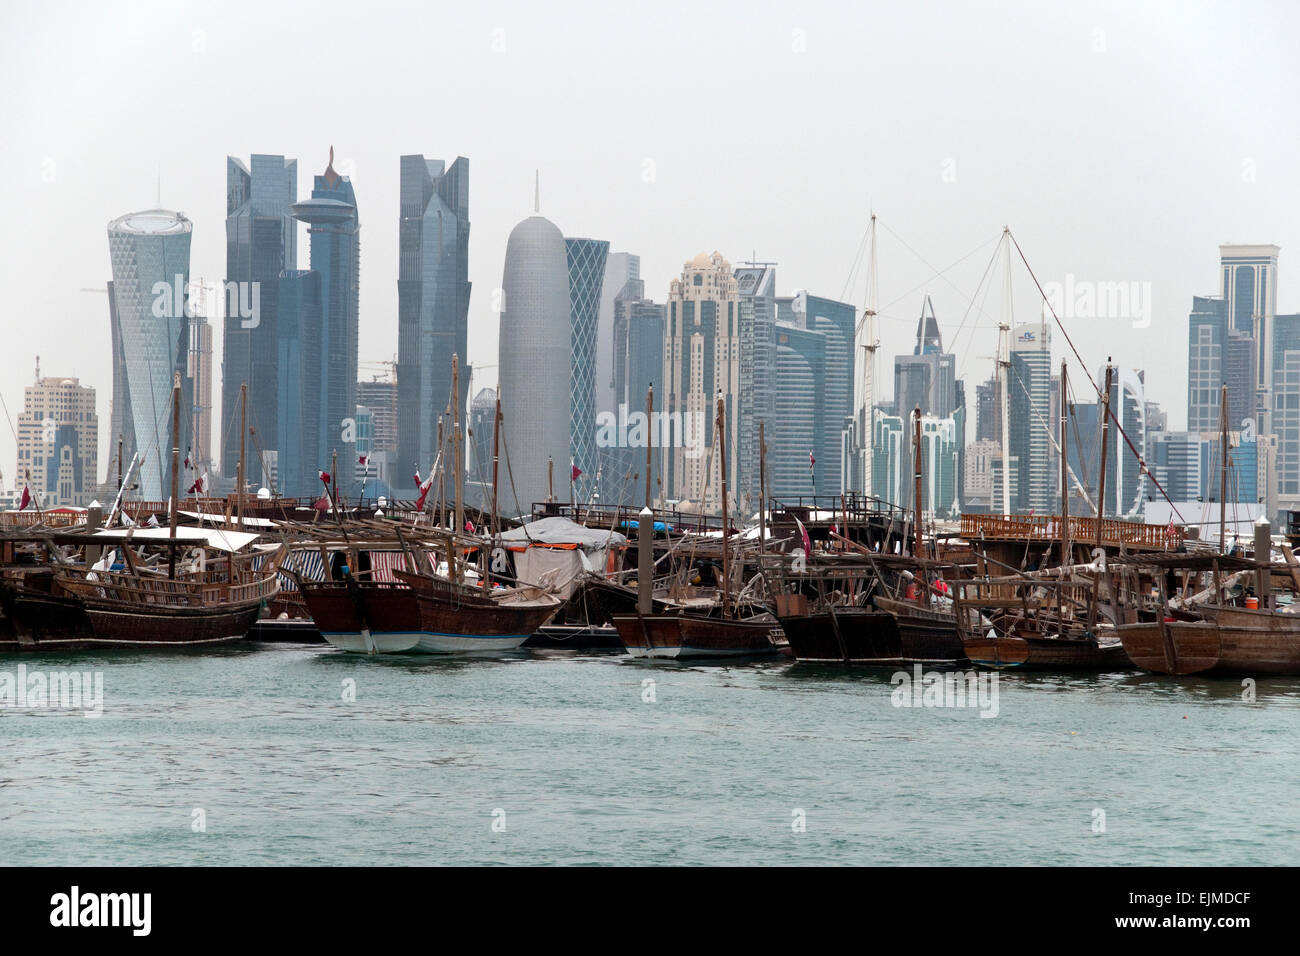 A fleet of dhow boat docked in a port, with the skyline of Doha, Qatar, in the background. Stock Photo